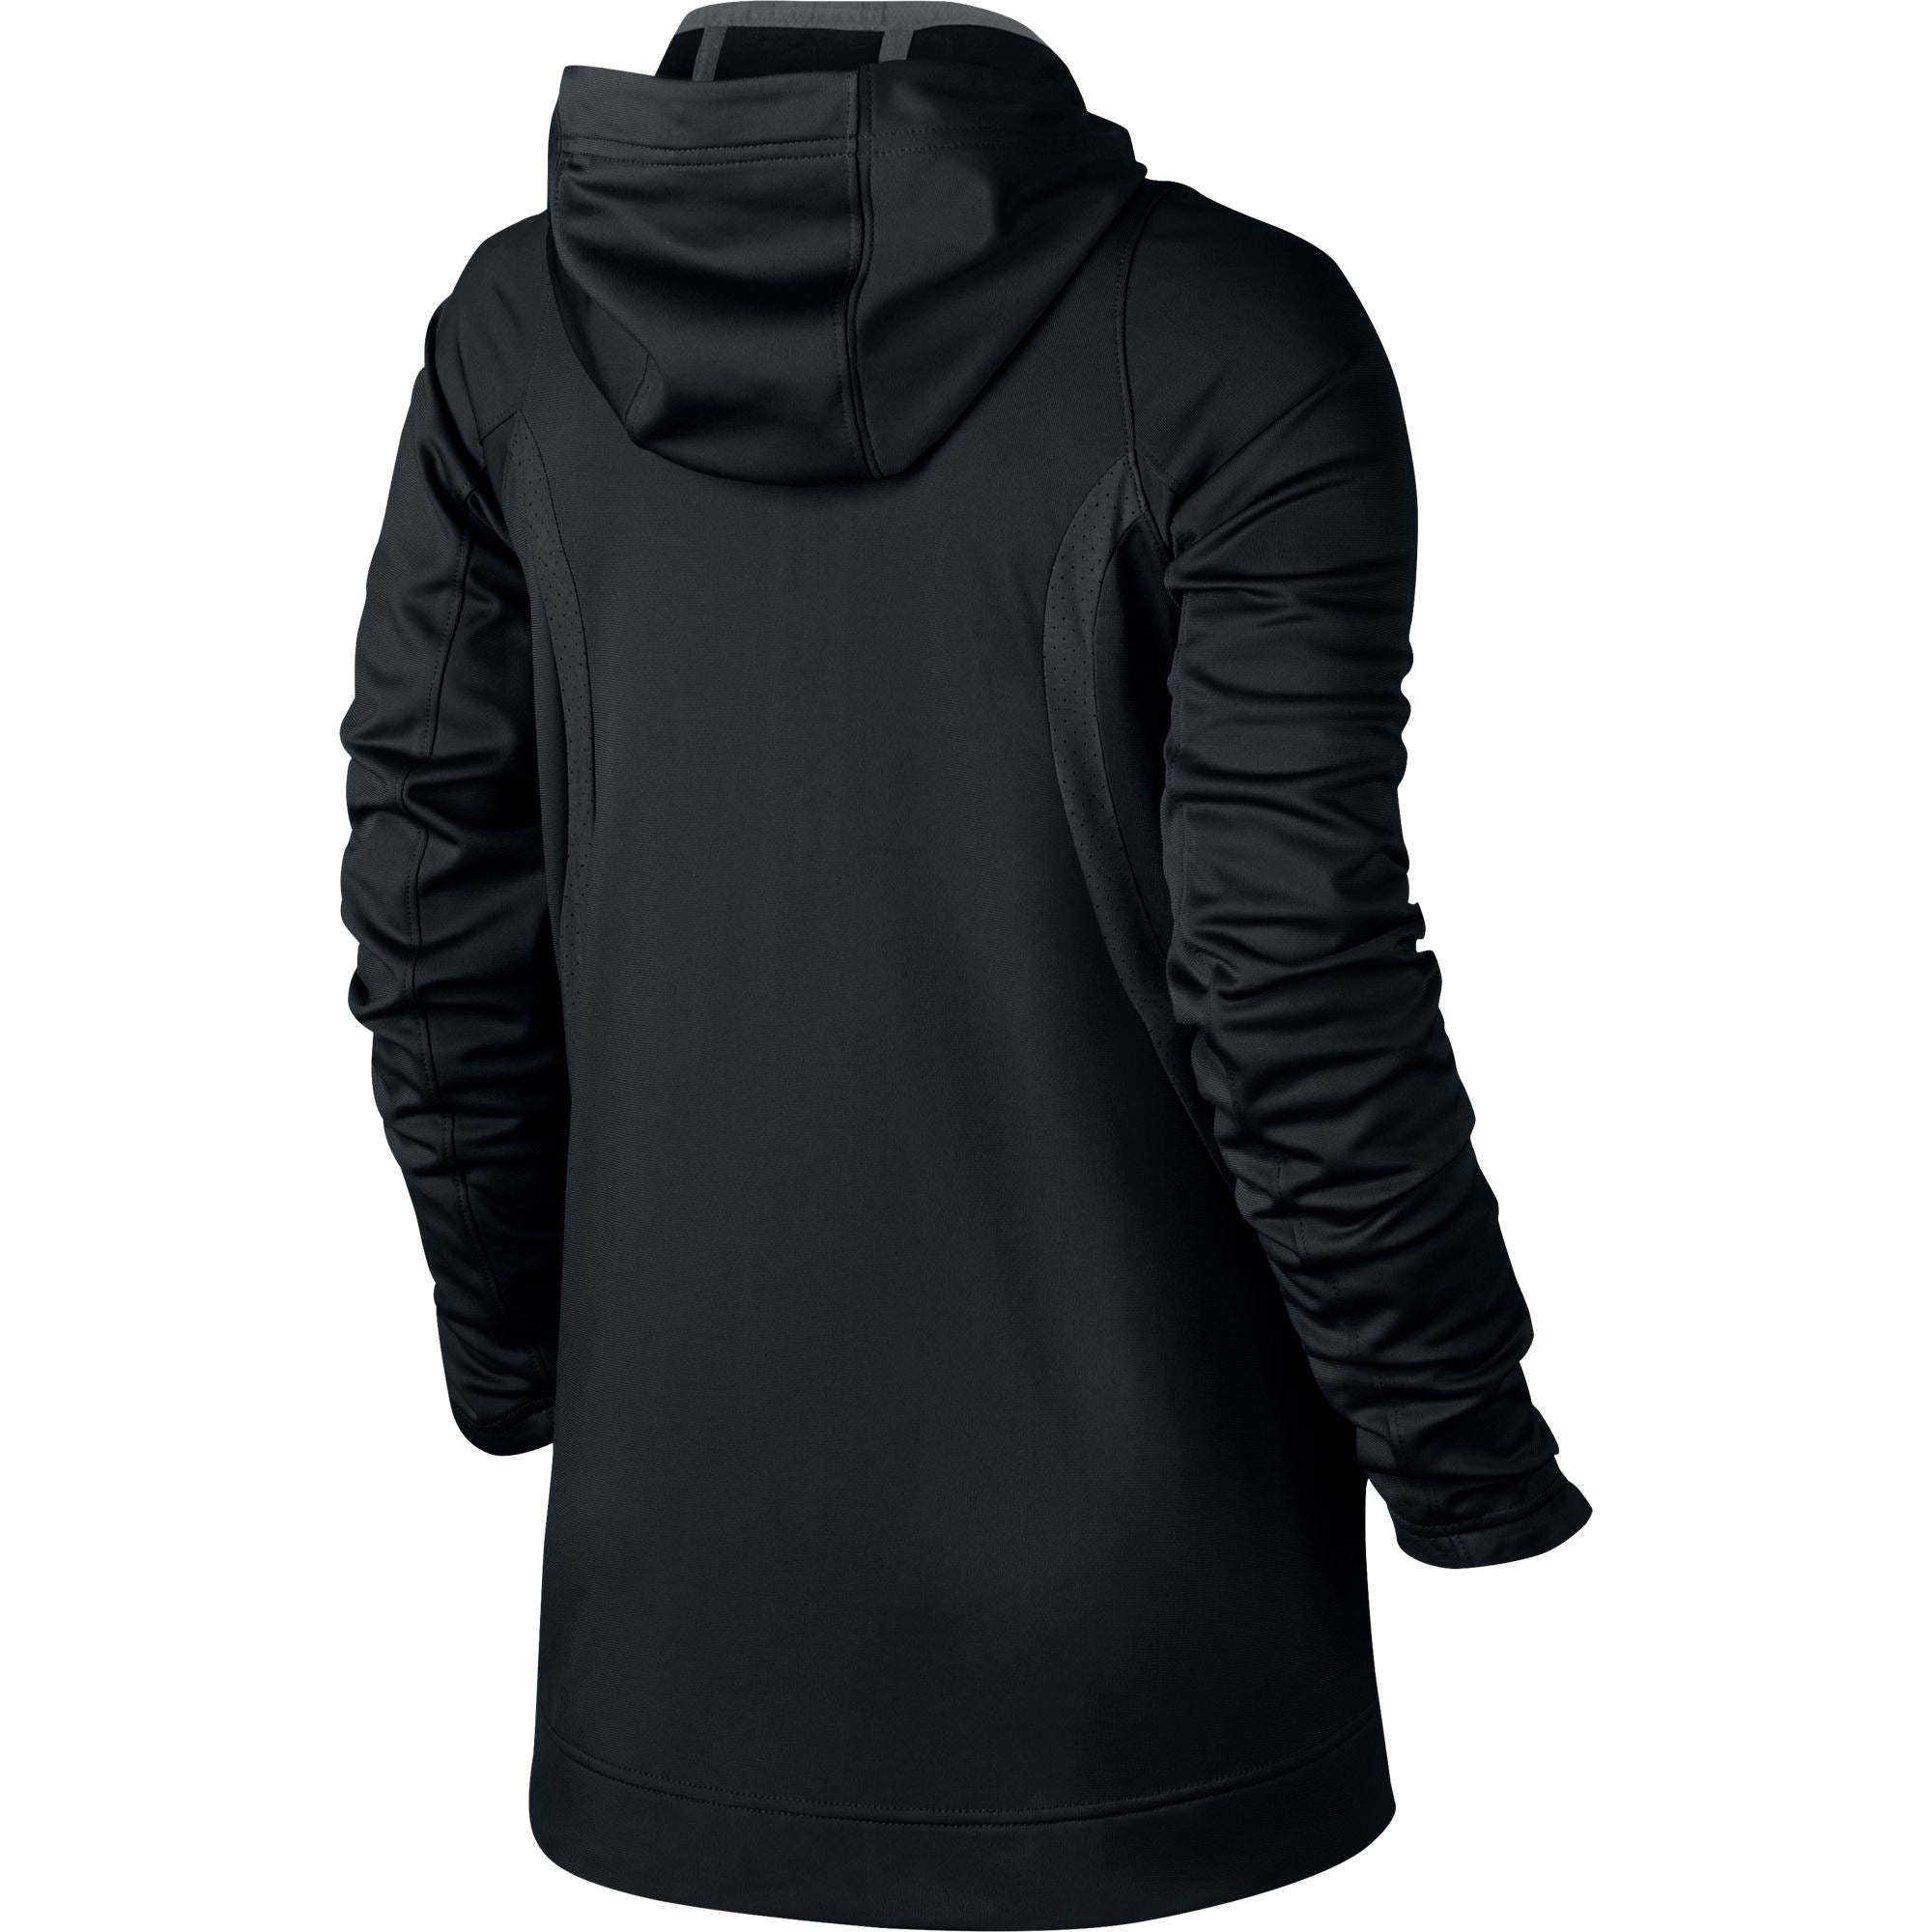 Nike Womens Basketball Hyper Elite Hoodie - Black/Anthracite/Iridescent